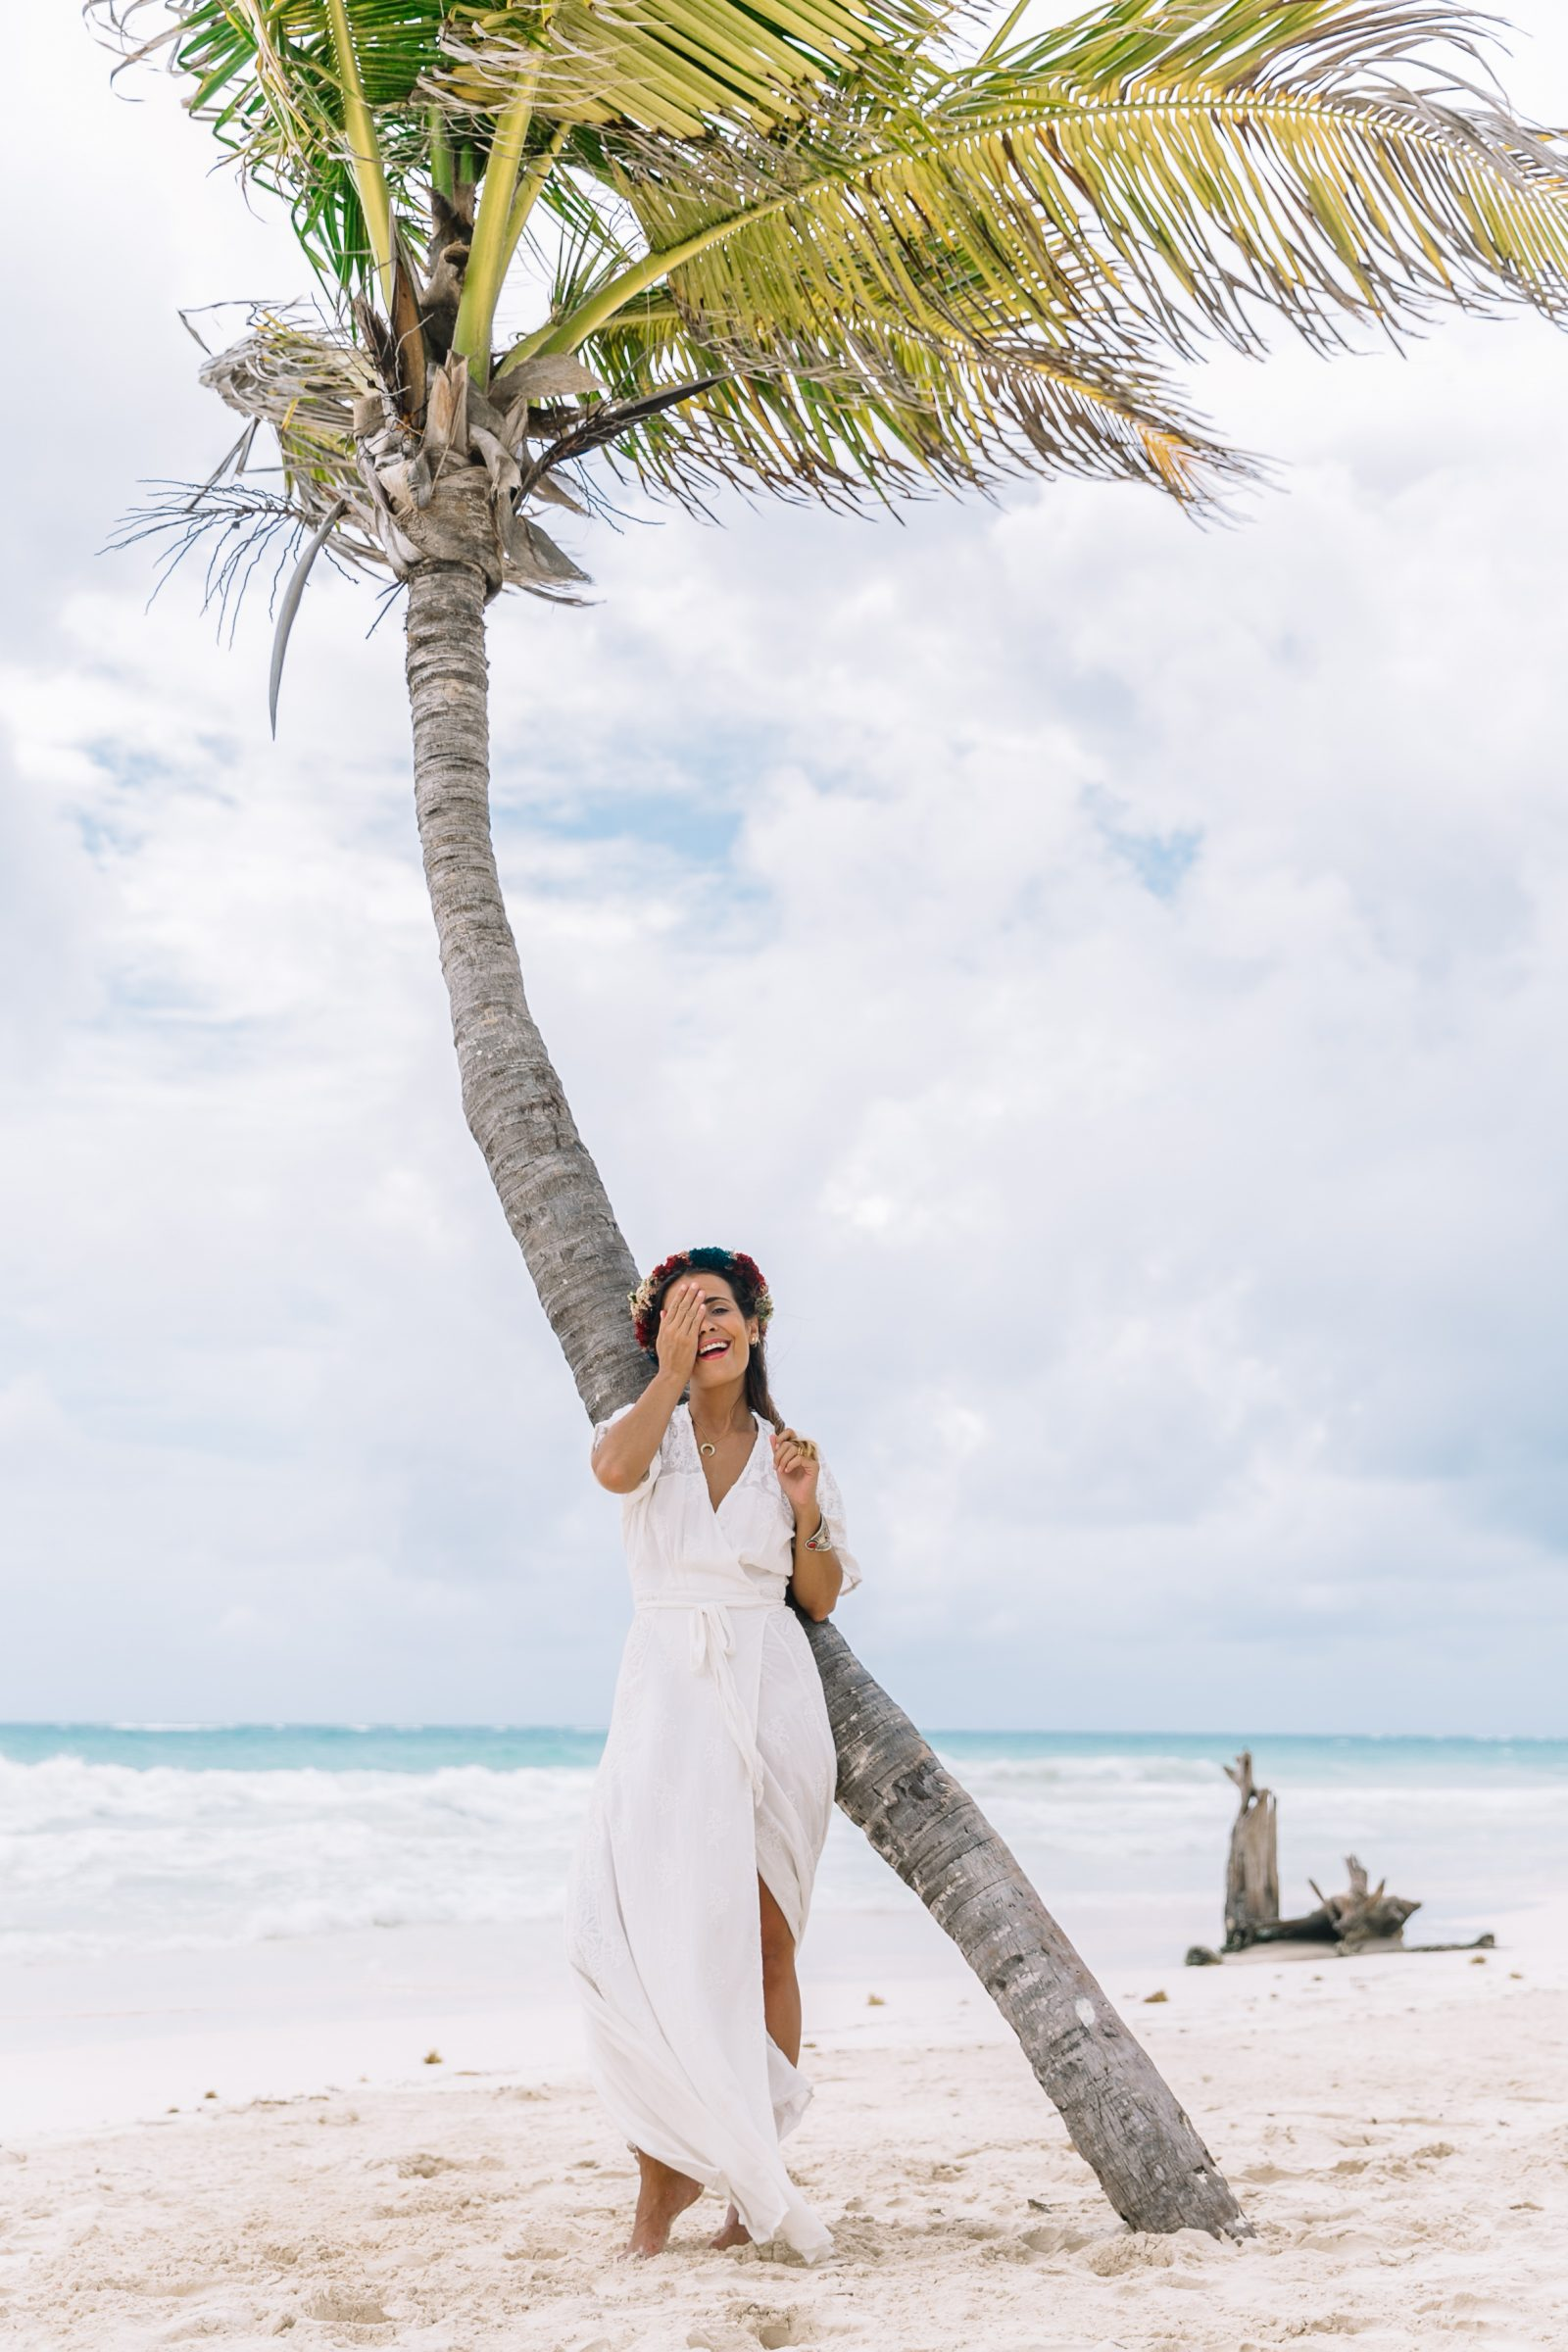 white_long_dress-boho_style-tulum_mexico-beach-floral_crown-outfit-collage_vintage-31